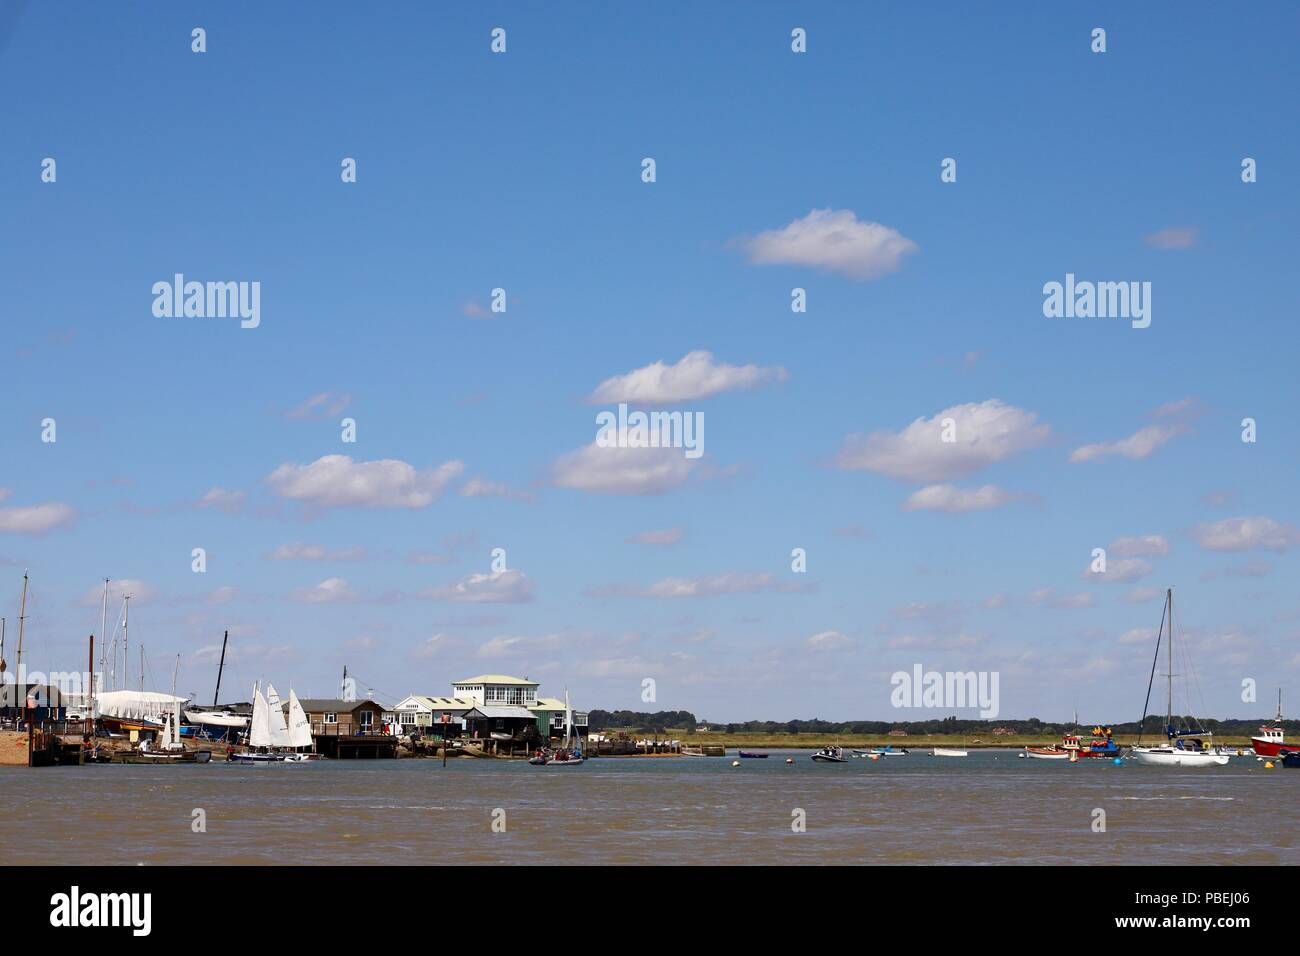 UK Weather: Bright warm and breezy this  morning for boats on the River Deben at Felixstowe Ferry, Suffolk. Credit: Angela Chalmers/Alamy Live News - Stock Image